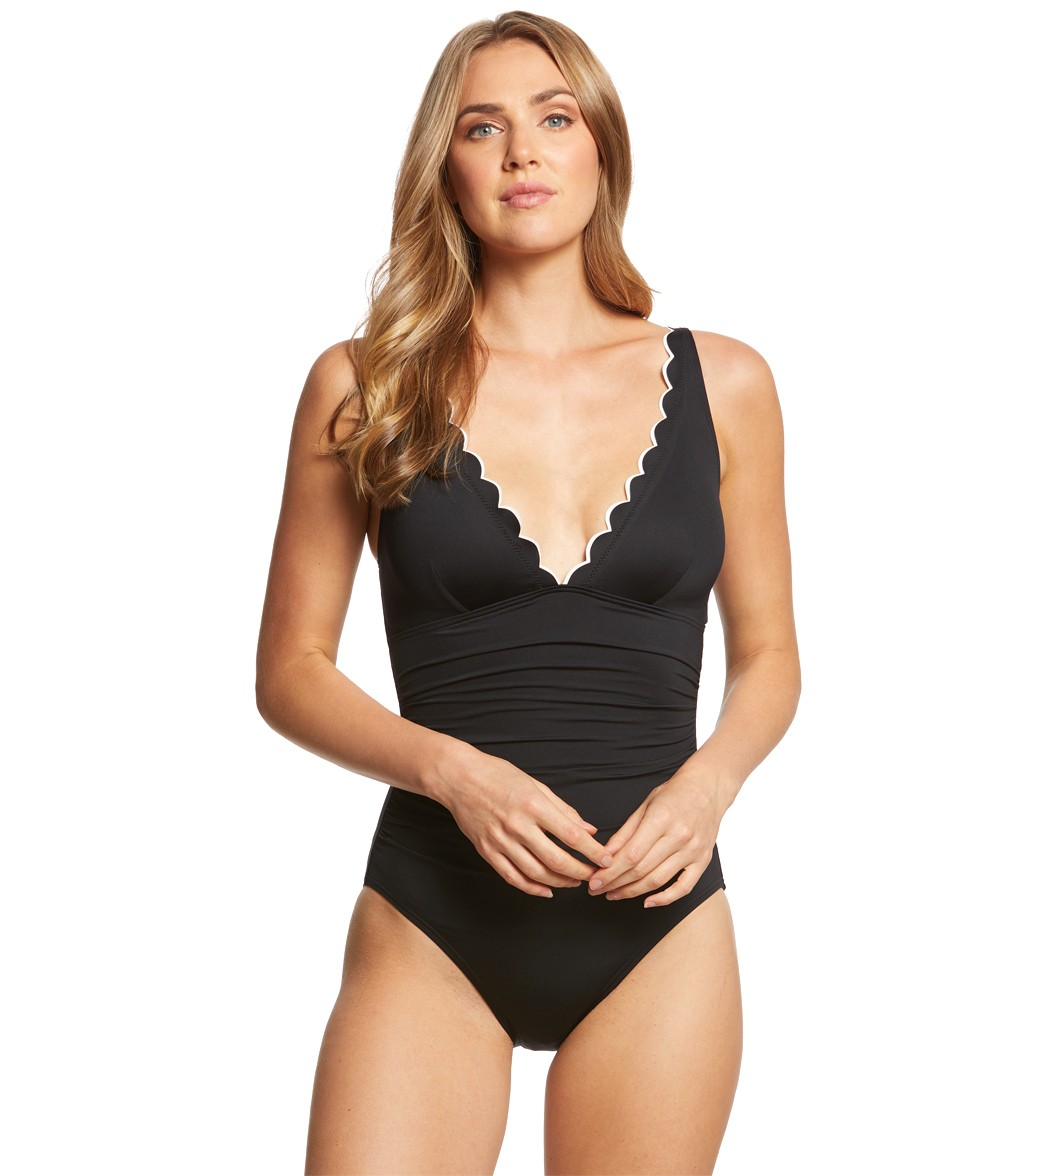 cb9d1ffa70a4d Kate Spade Fort Tilden Scalloped One Piece Swimsuit at SwimOutlet.com - Free  Shipping